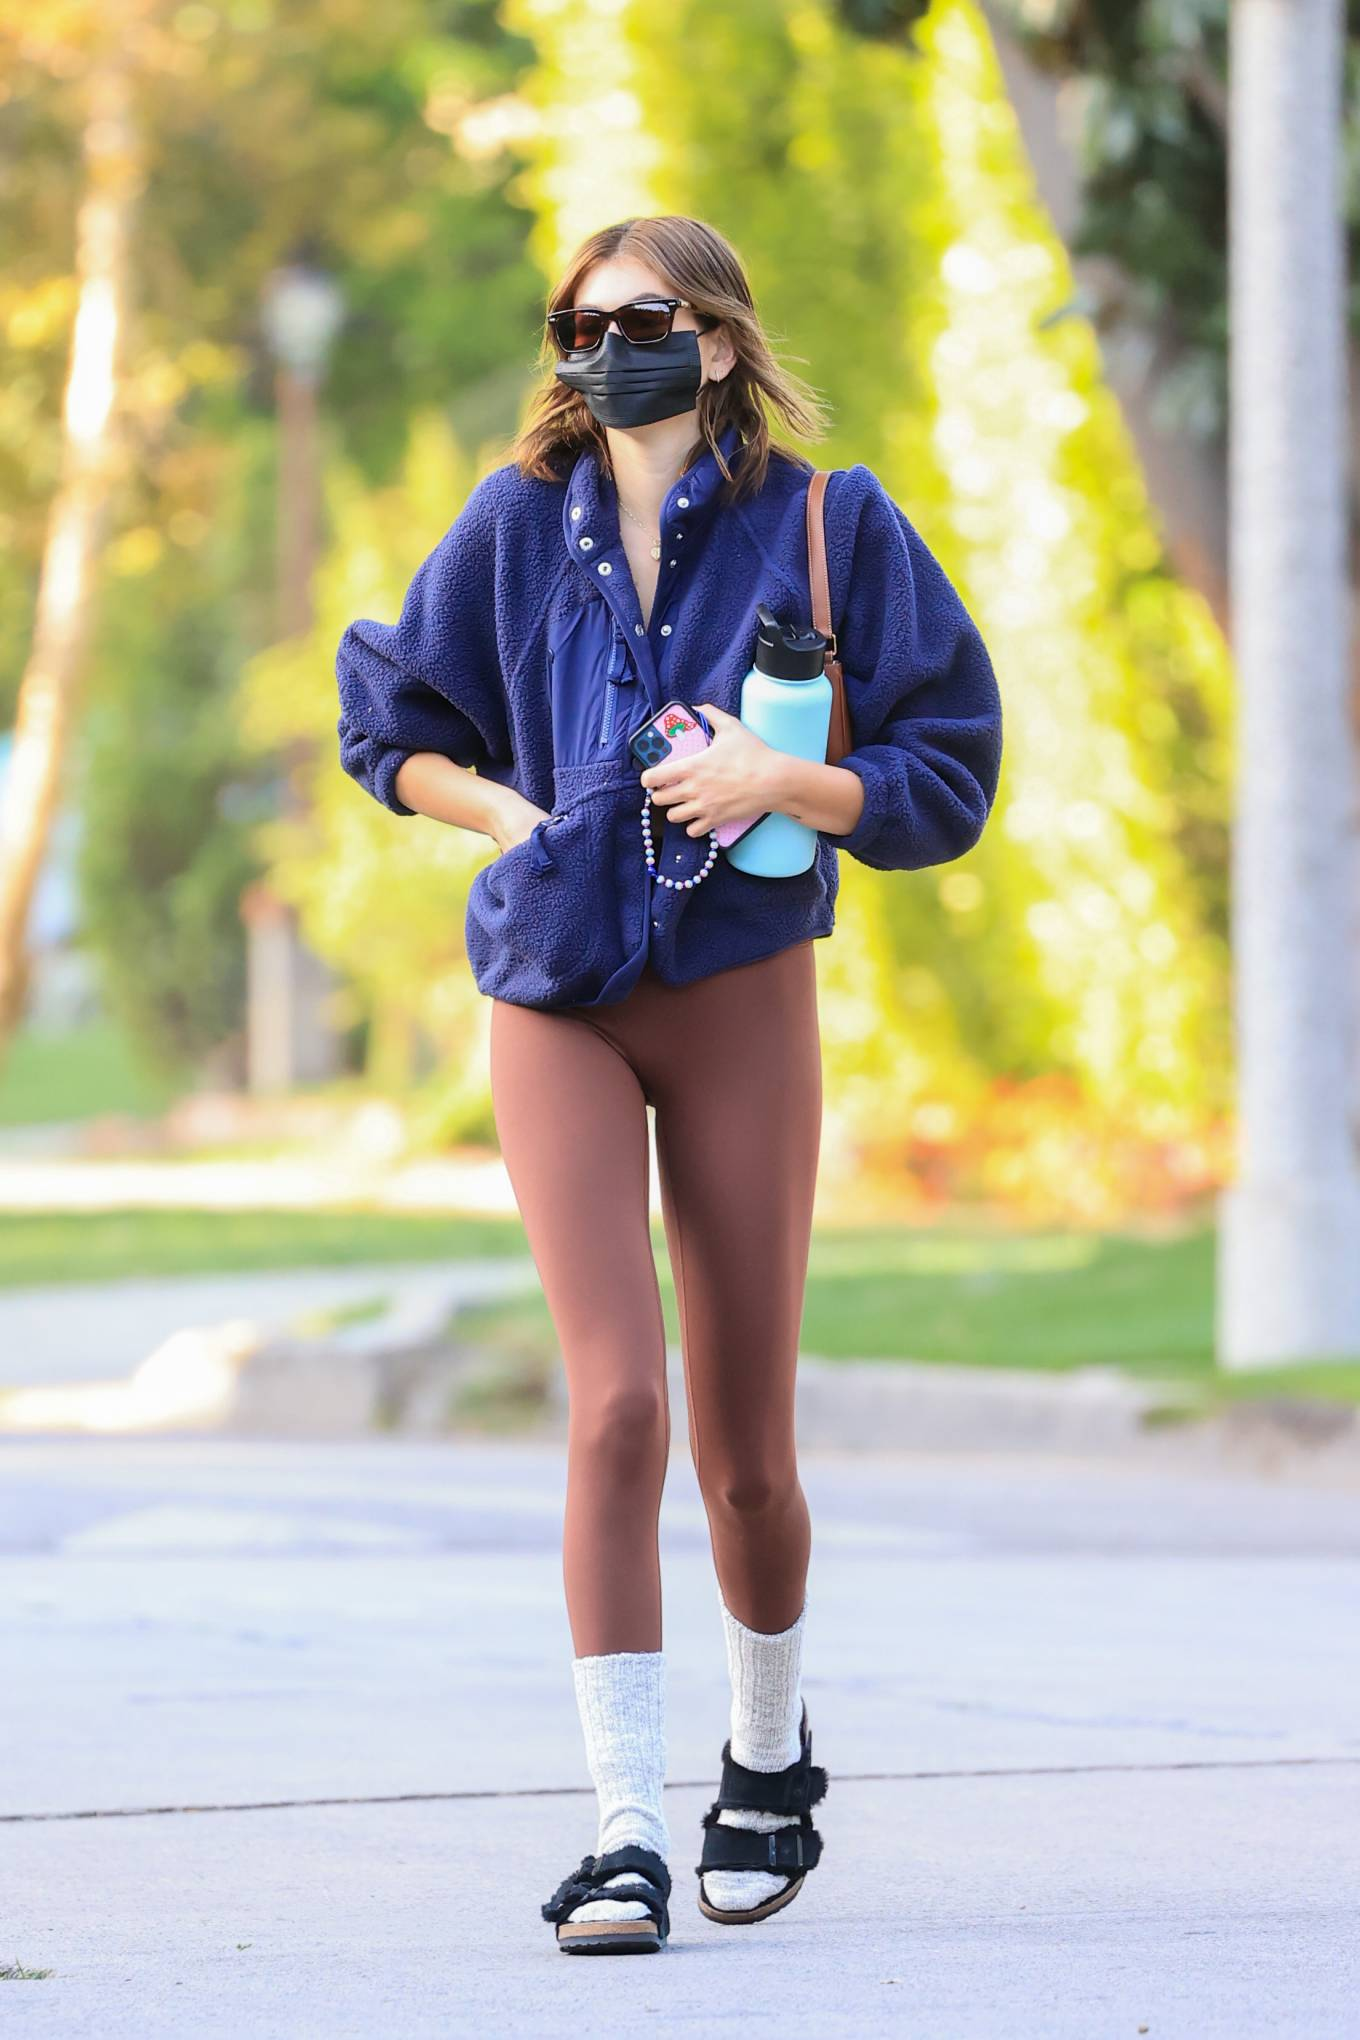 Kaia Gerber wearing fitted brown basic workout leggings